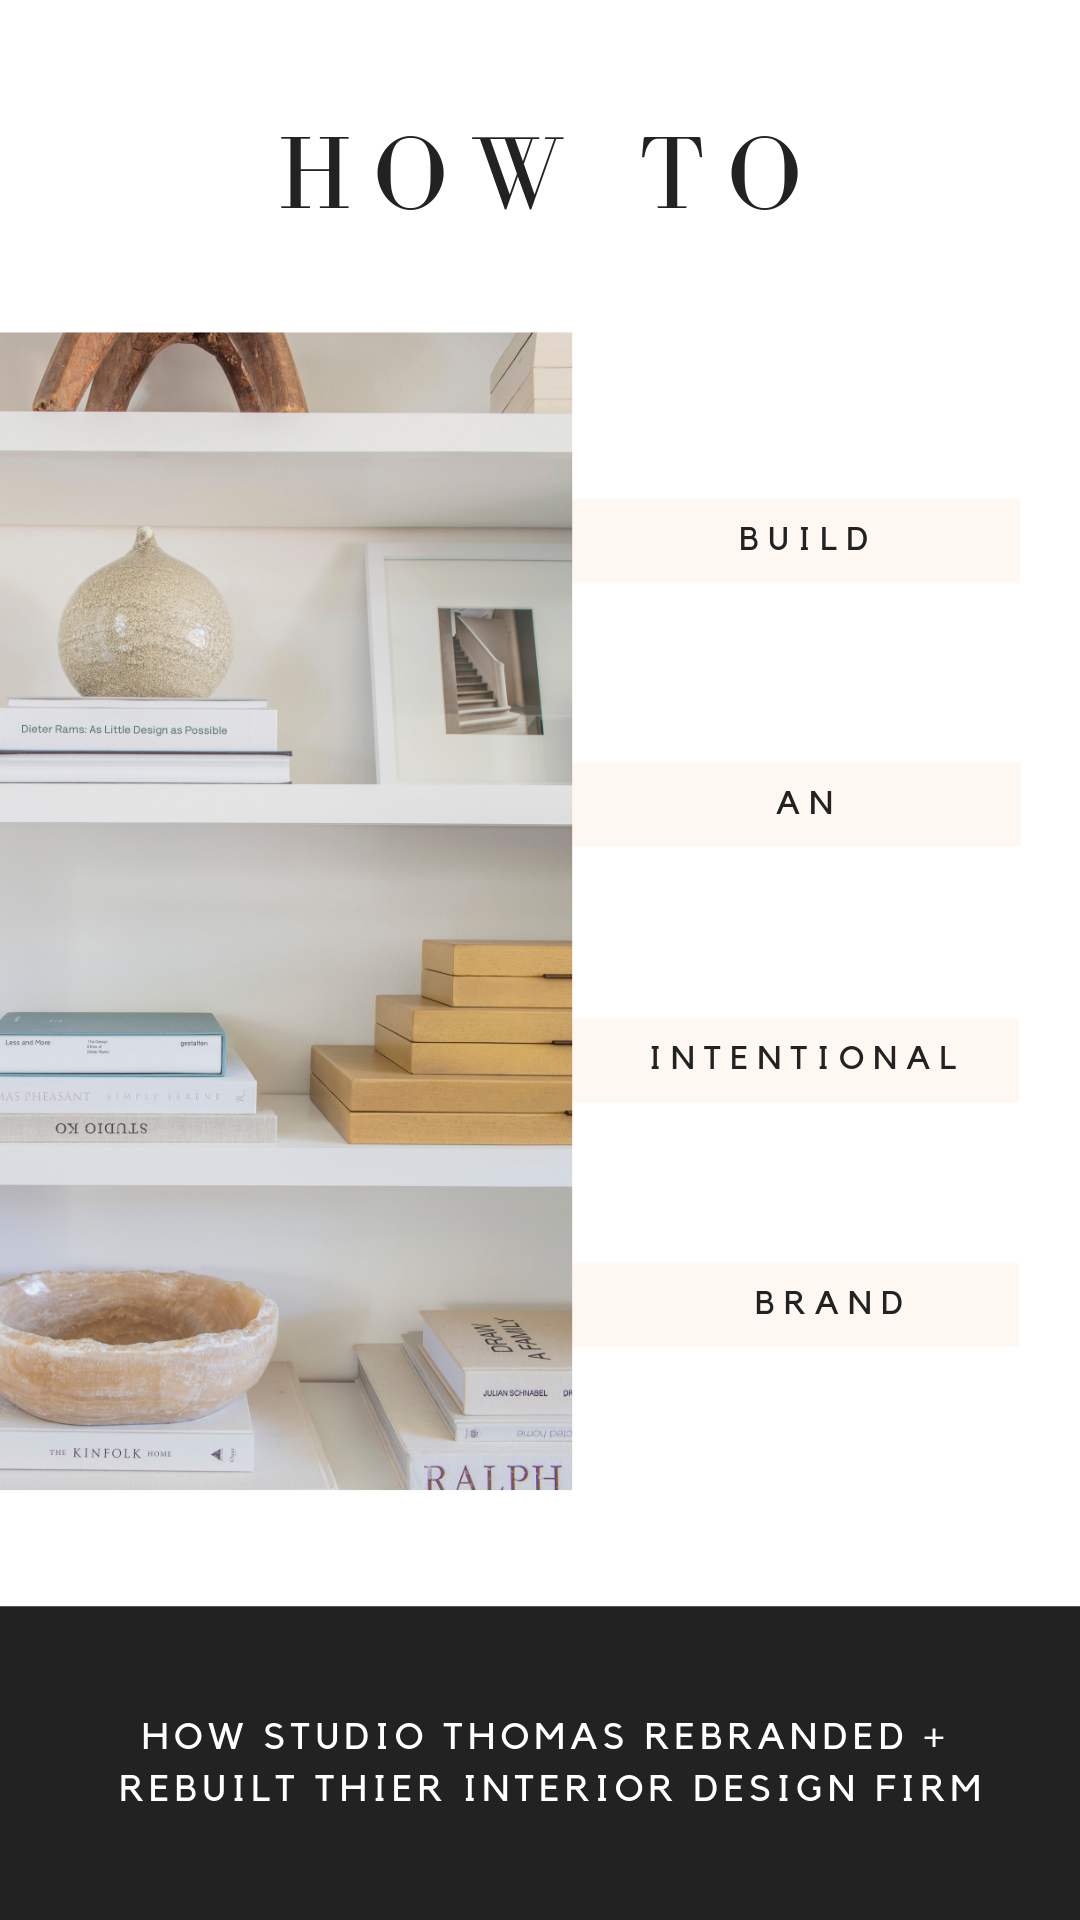 How To Build An Intentional Interior Design Brand Interior Design Brand Branding Design Brand Inspiration Board